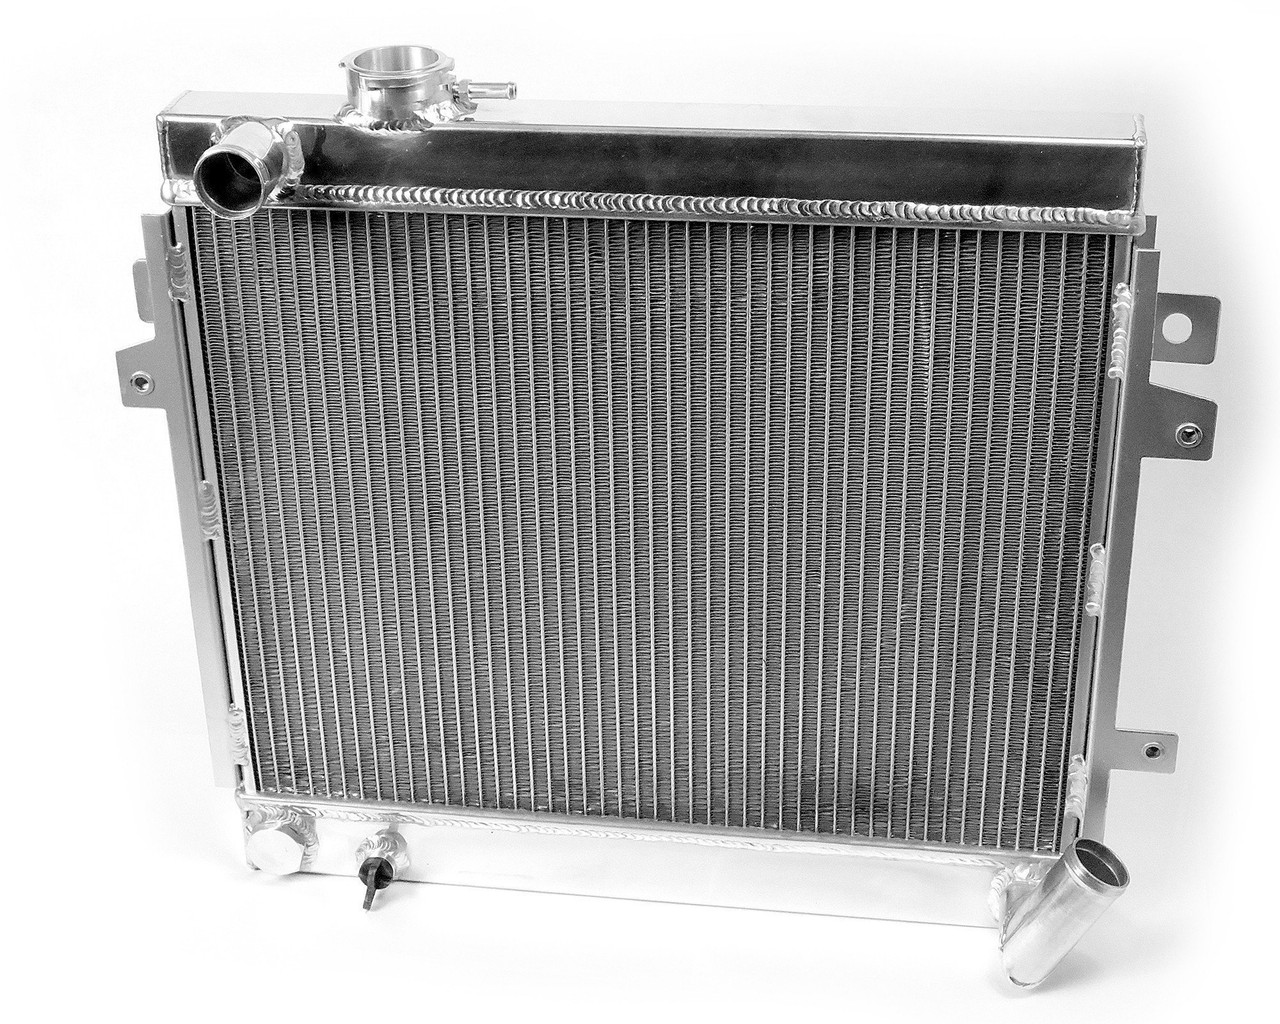 Auto Ricambi performance aluminum radiator FIAT Spider 2000 and Pininfarina 1980-1985 with Bosch fuel injection and manual transmission (1995cc)